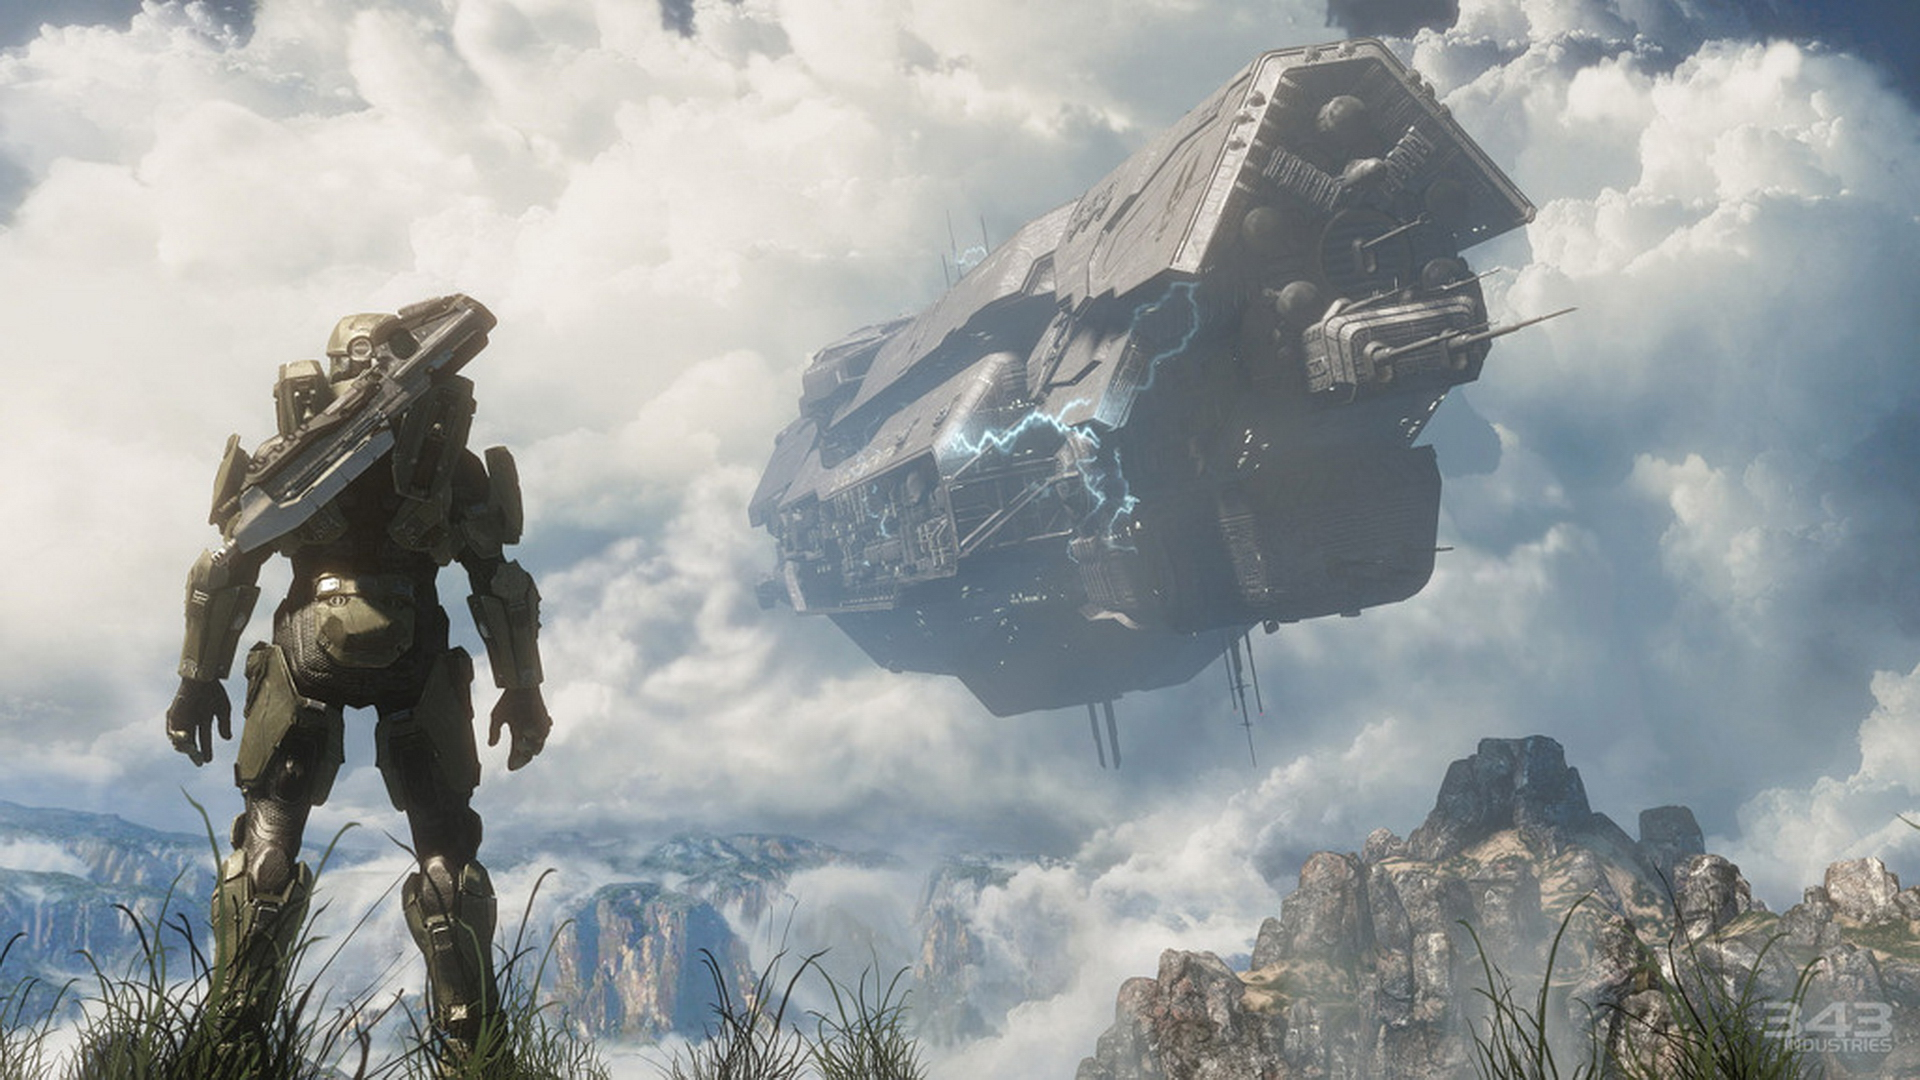 Halo 4 - Master Chief Spartan - UNSC ship crashing